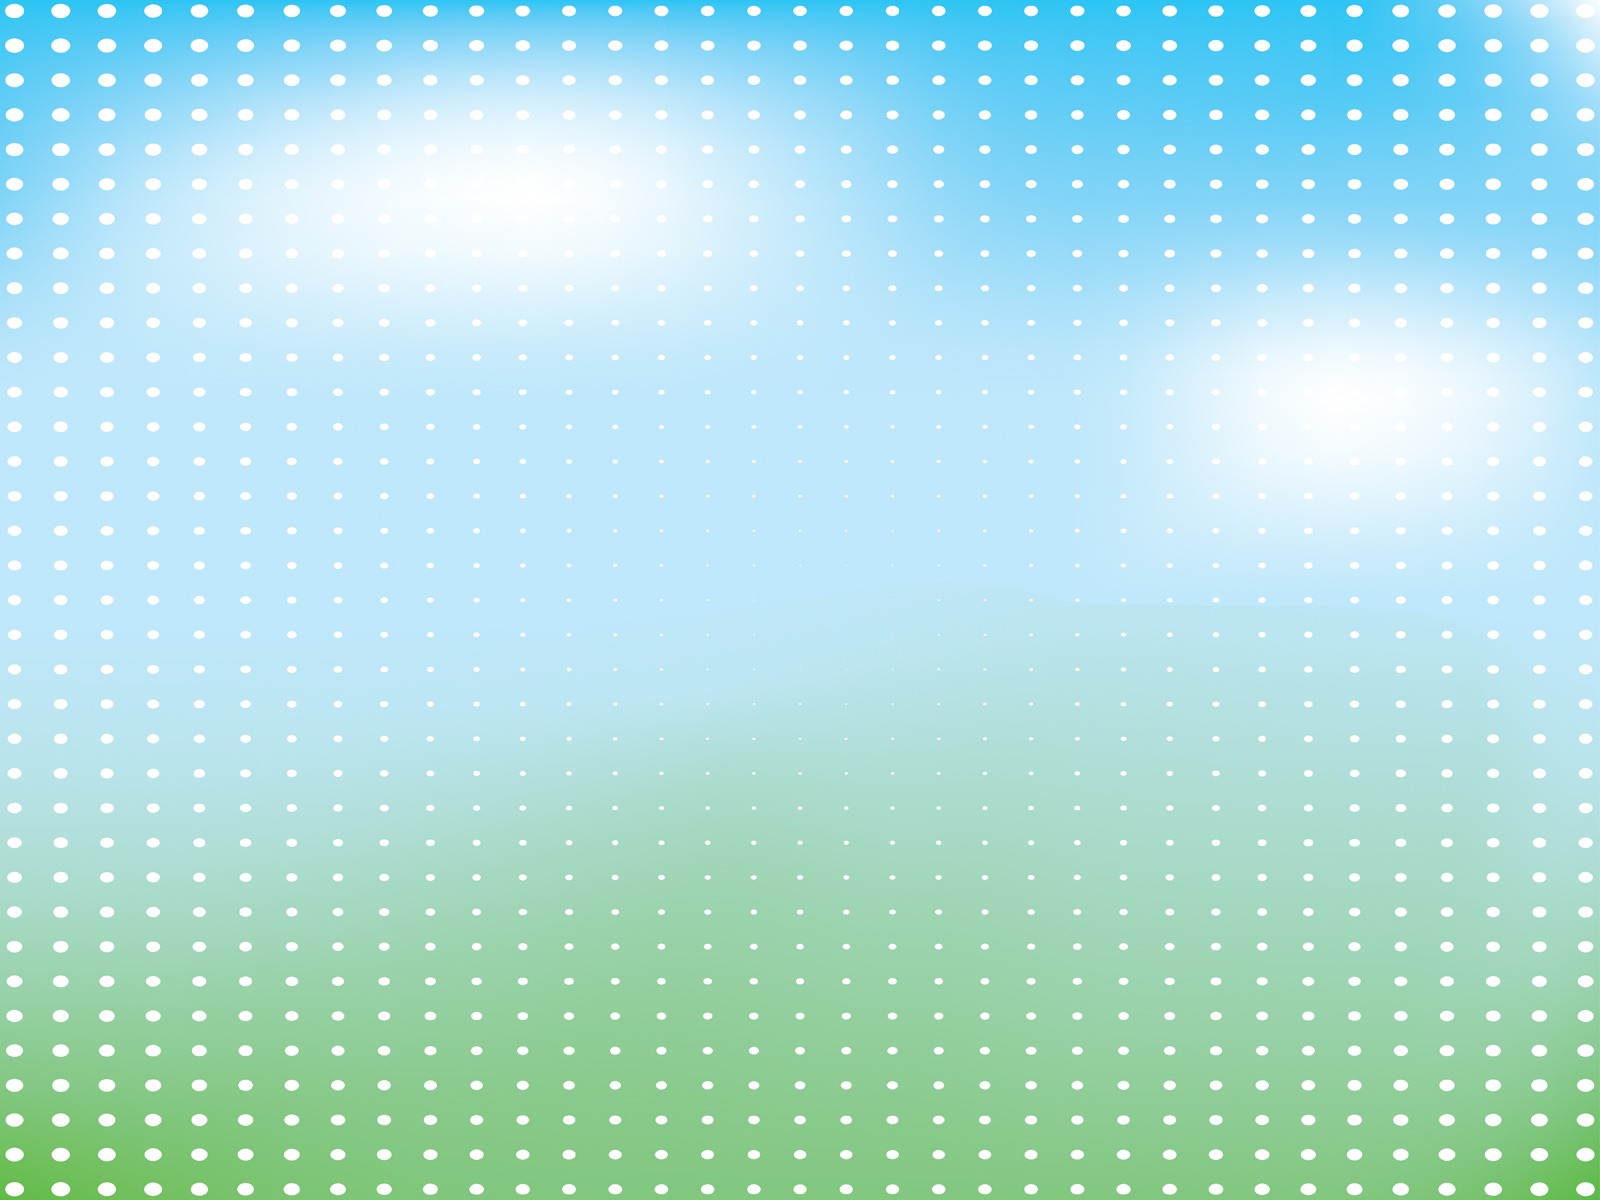 White dots ppt backgrounds